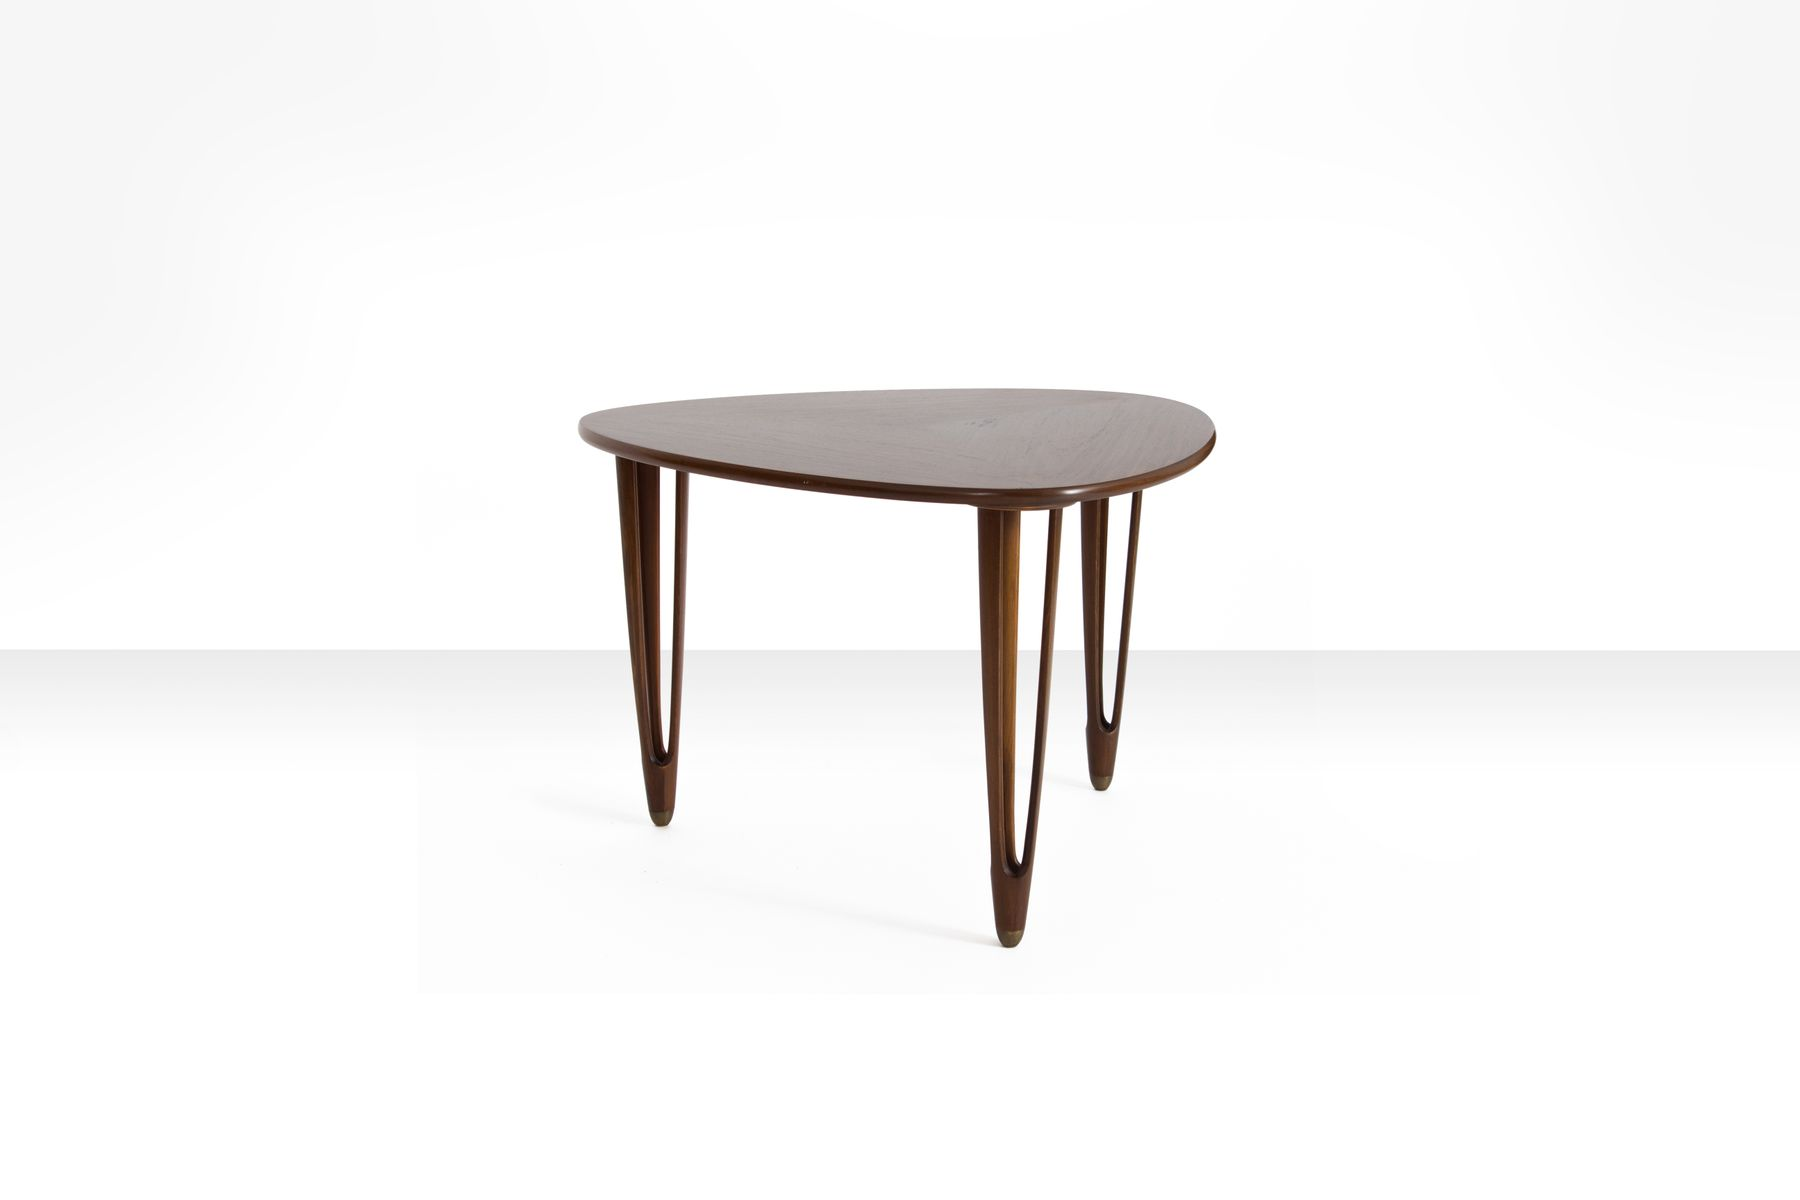 Rosewood Triangular Coffee Table from B C M¸bler 1950s for sale